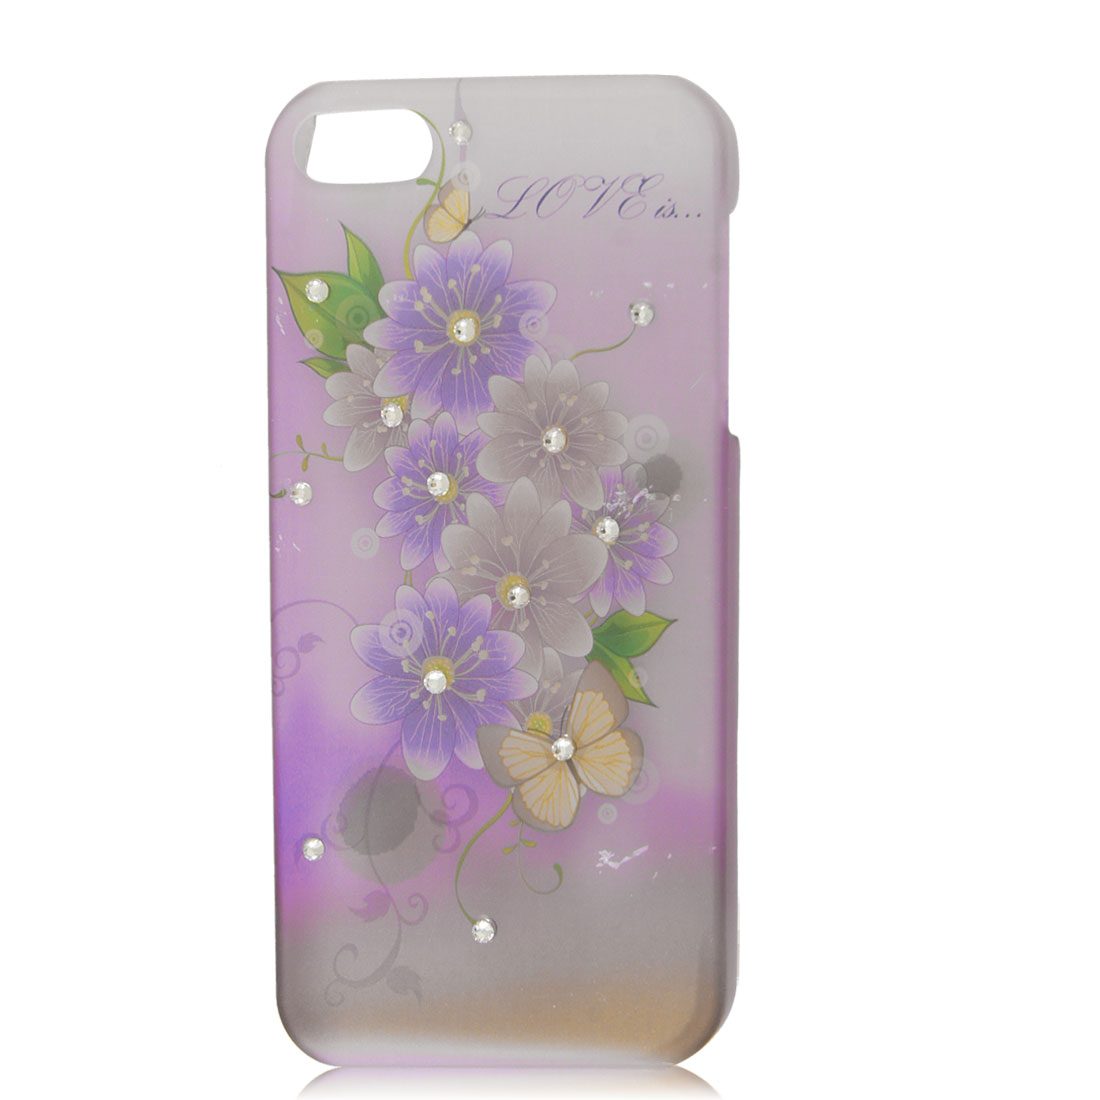 Clear Purple Floral Glitter Bling Rhinestone Hard Back Case Cover Skin for iPhone 5 5G